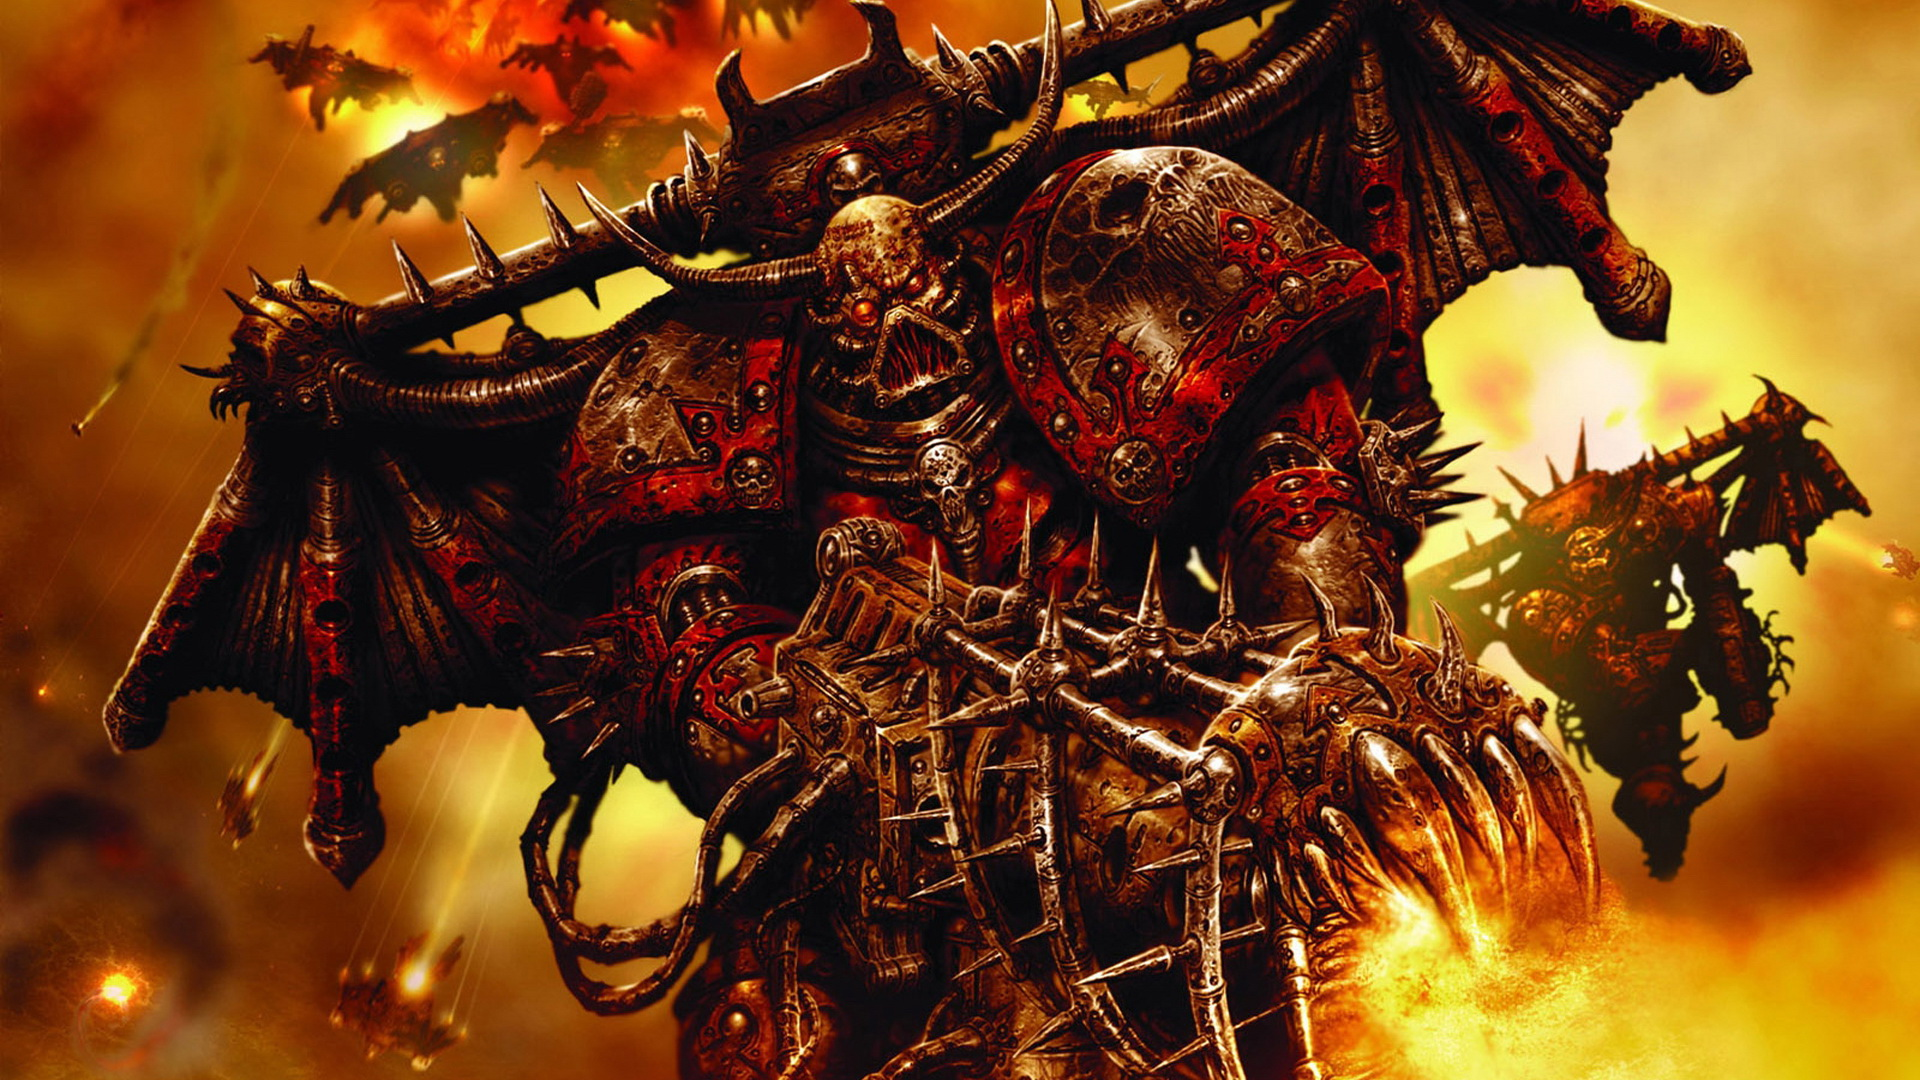 'Strong Possibility' that Relic will work with Games Workshop for 'Dawn of War 3'